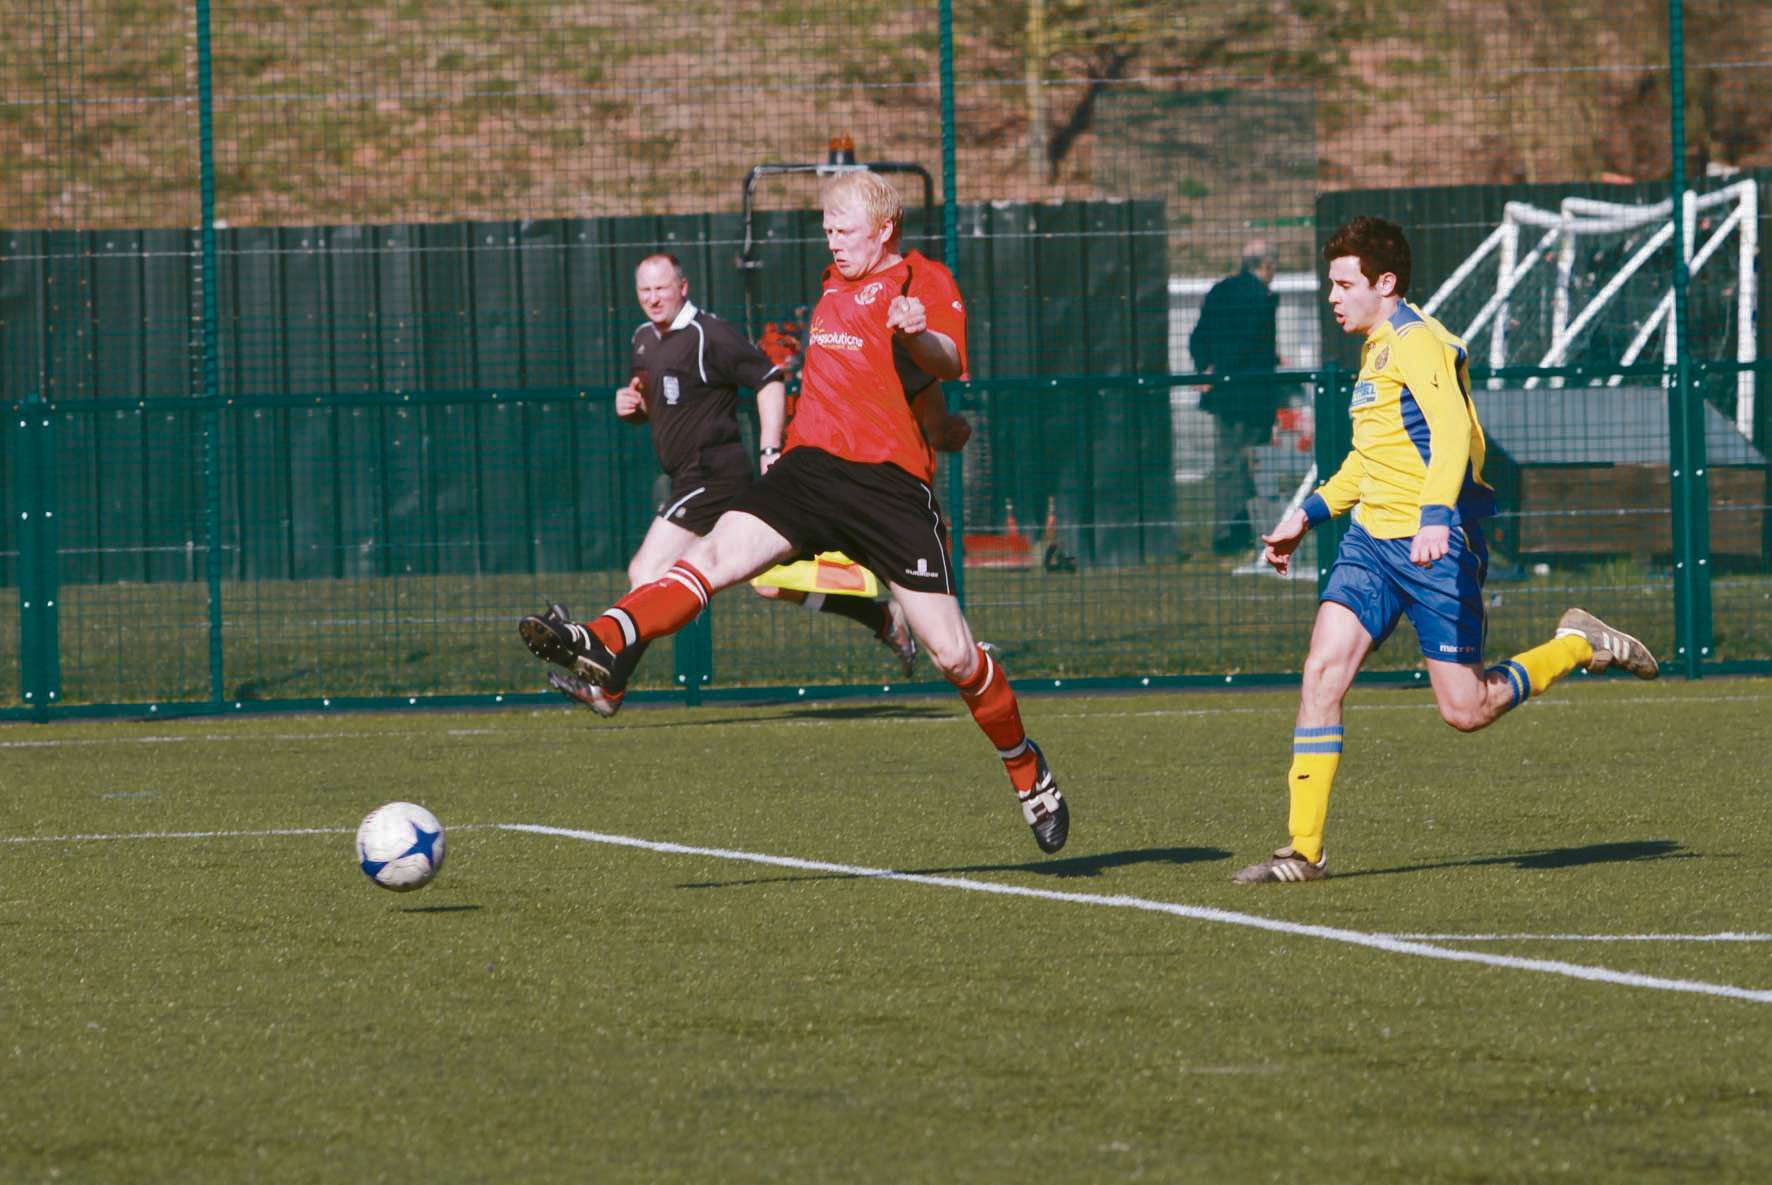 Dan Stack, pictured, will be leading AFC Ludlow's attack at the Showtime Stadium this Saturday.